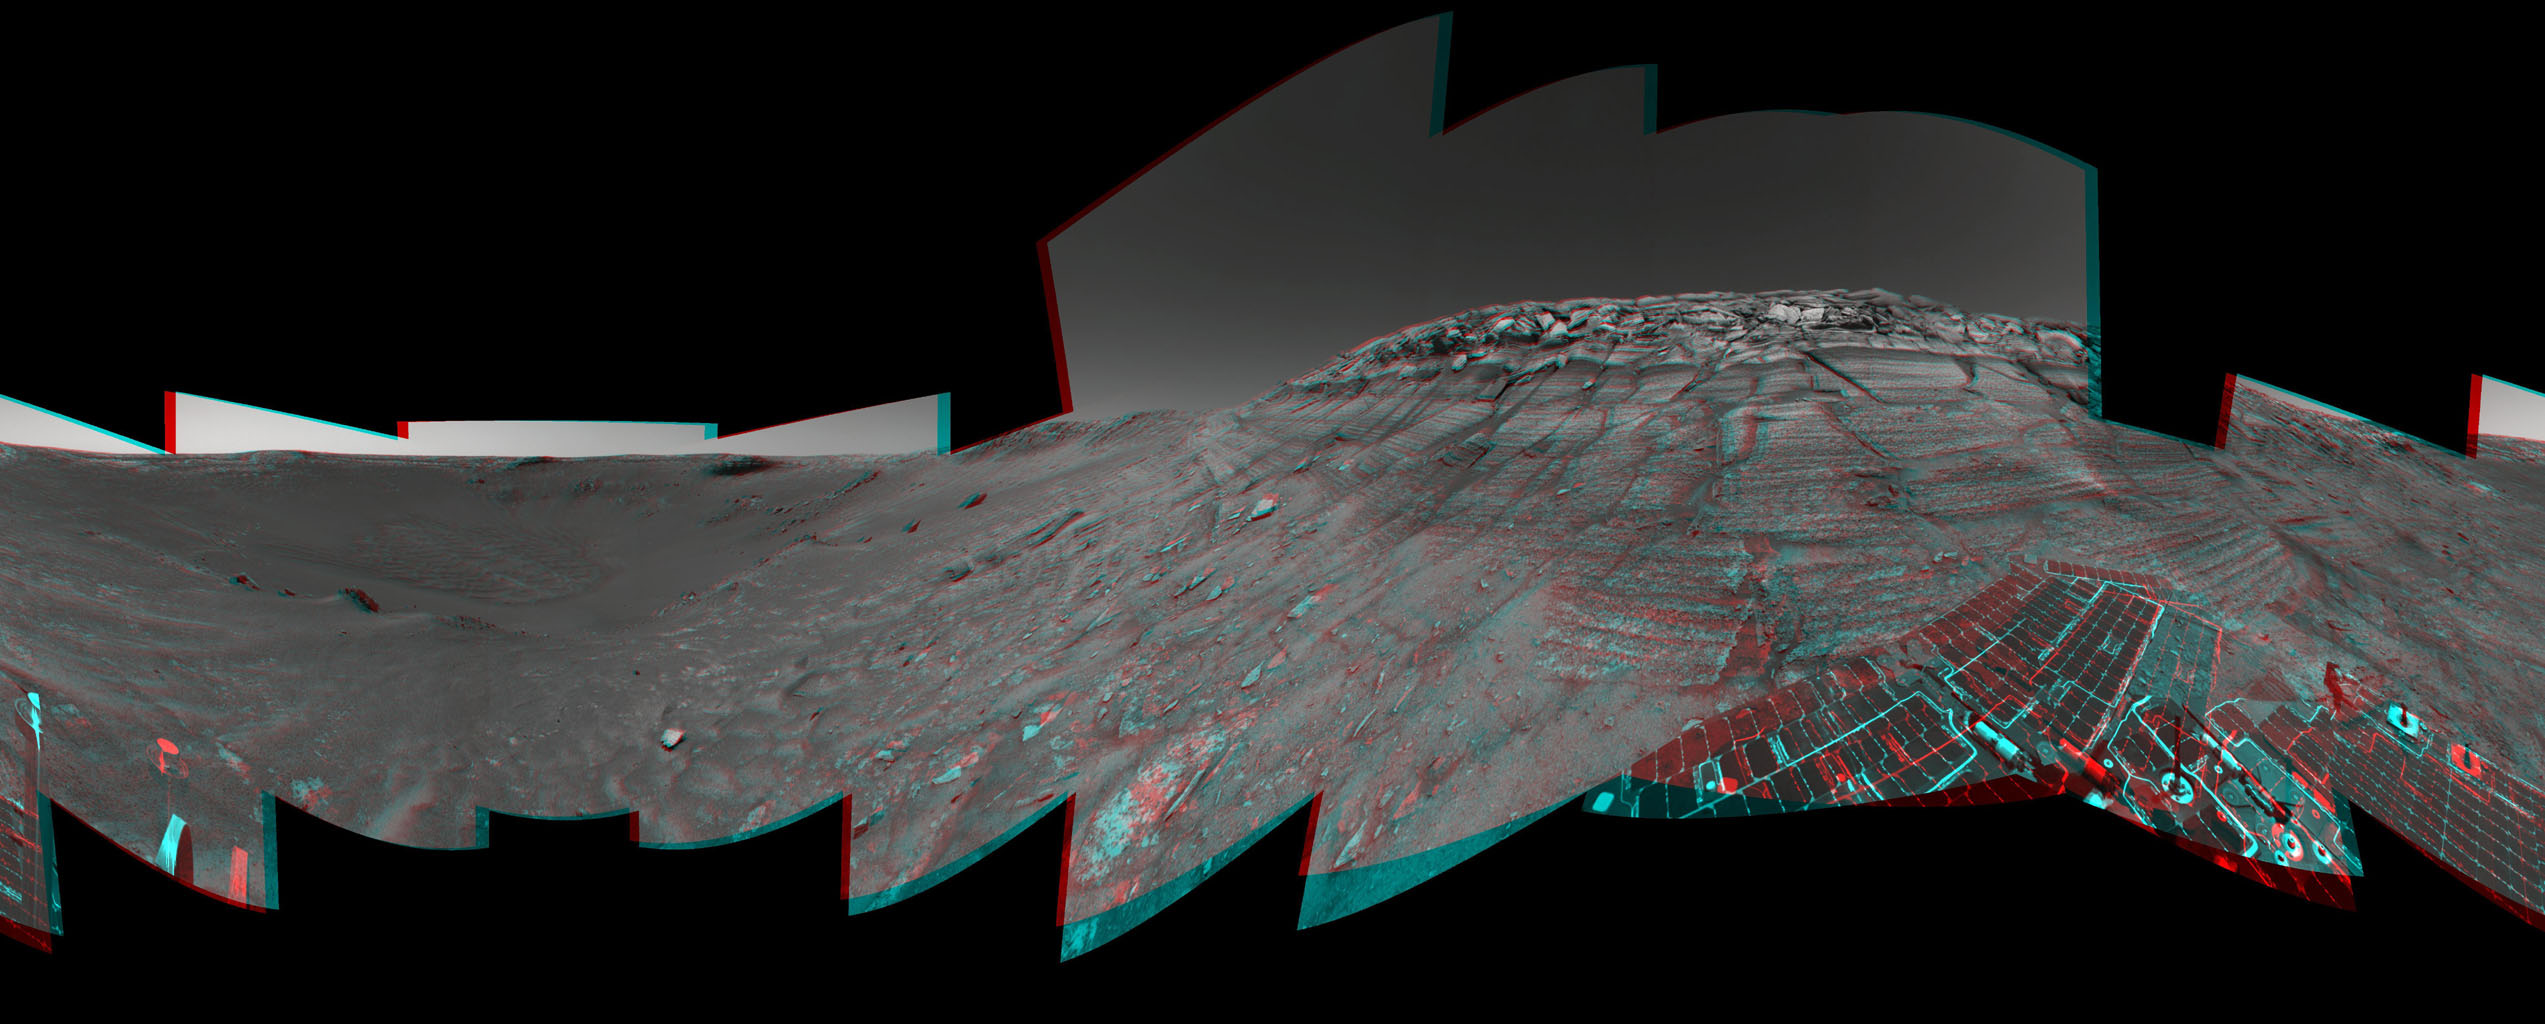 NASA's Mars Exploration Rover Opportunity reached the base of 'Burns Cliff,' a portion of the inner wall of 'Endurance Crater' in this anaglyph from the rover's 285th martian day (Nov. 11, 2004). 3-D glasses are necessary to view this image.